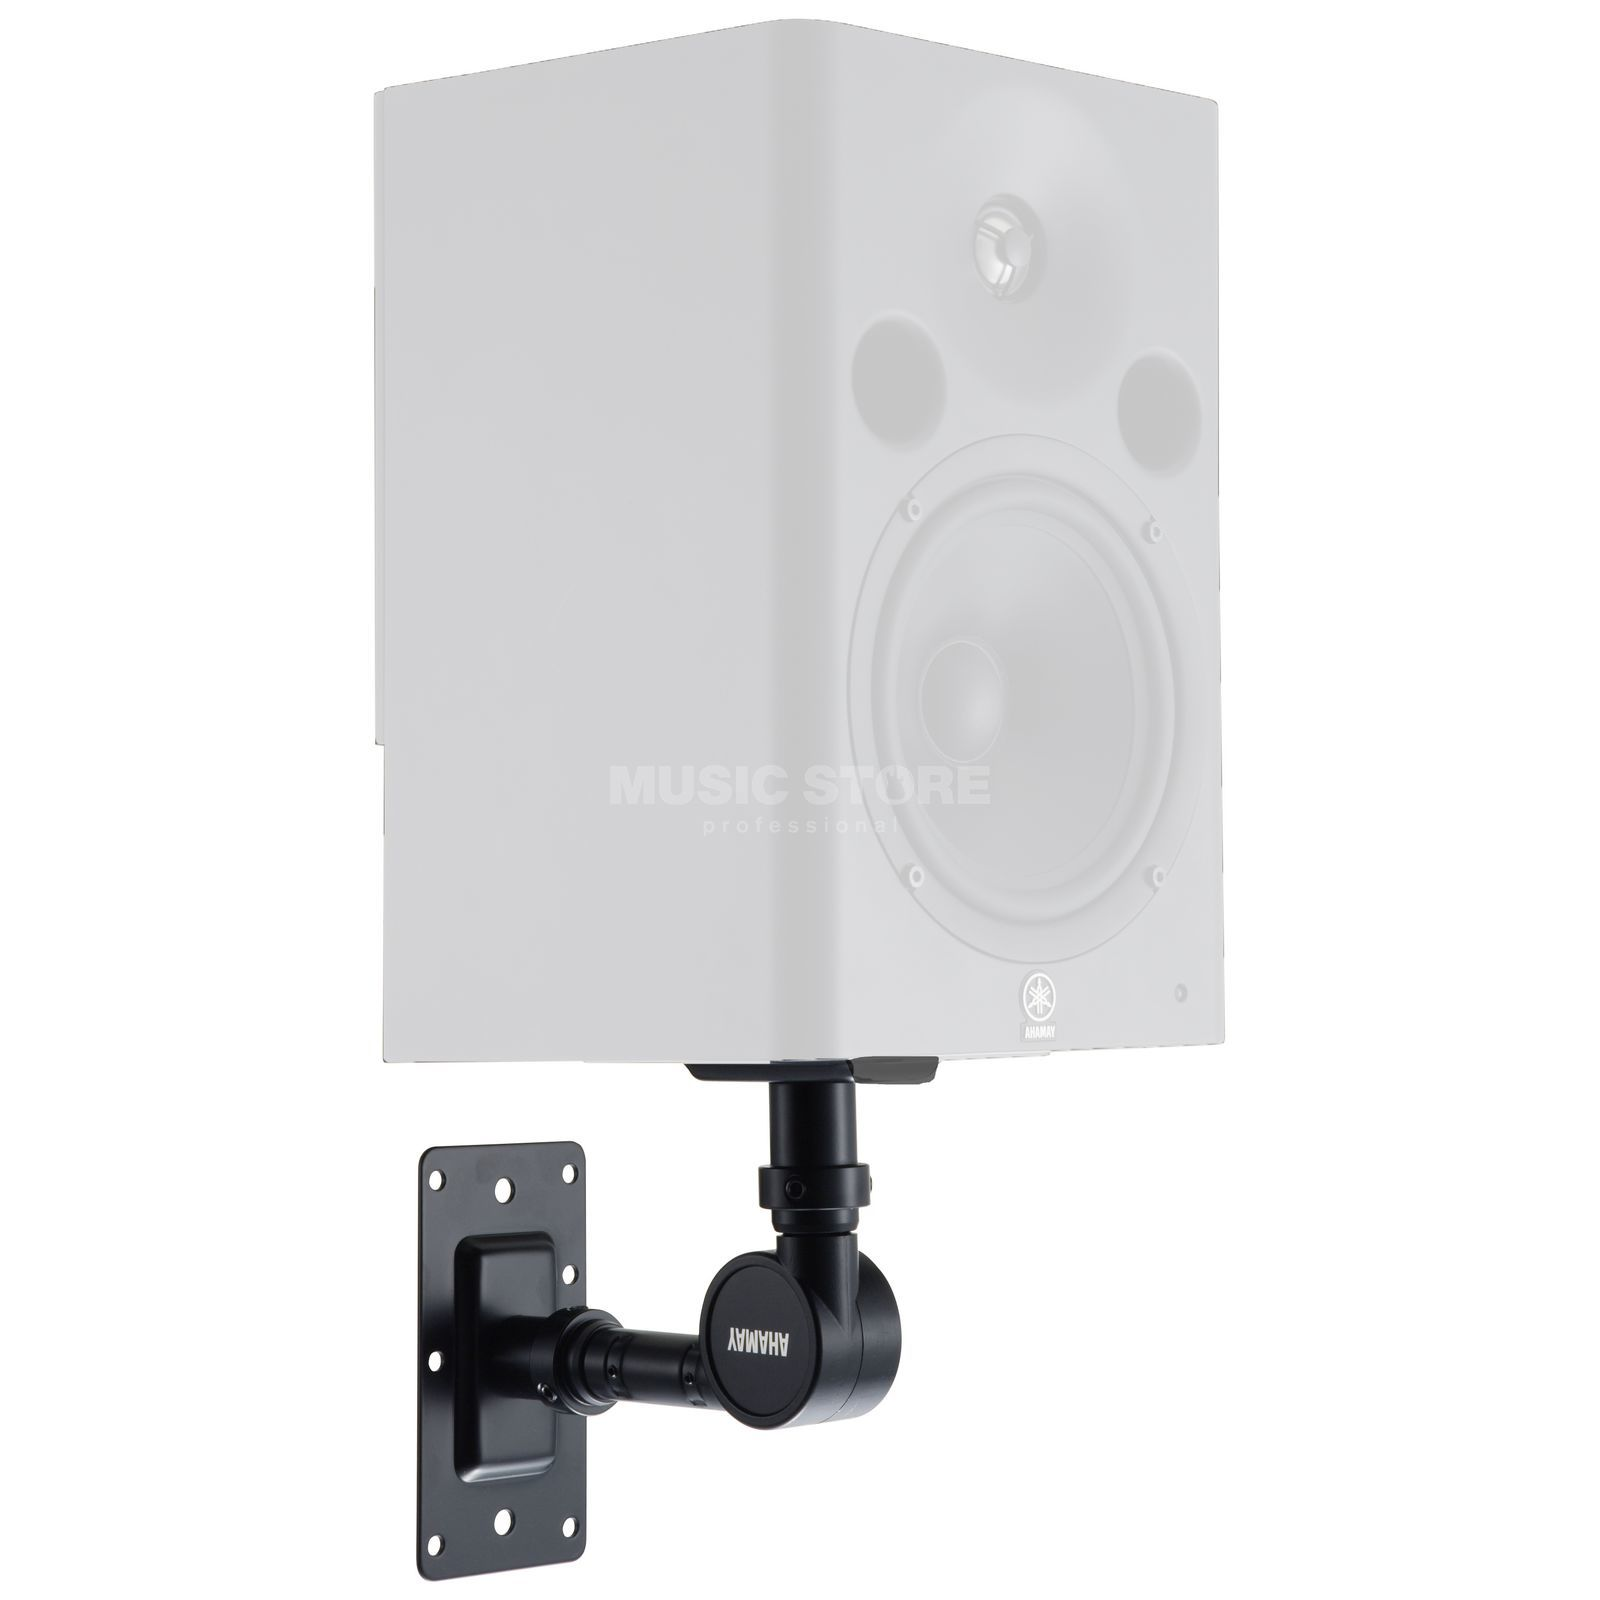 Yamaha BWS 50 260 Wall Mount for MSR100, Stagepas300, MSP7 Produktbillede